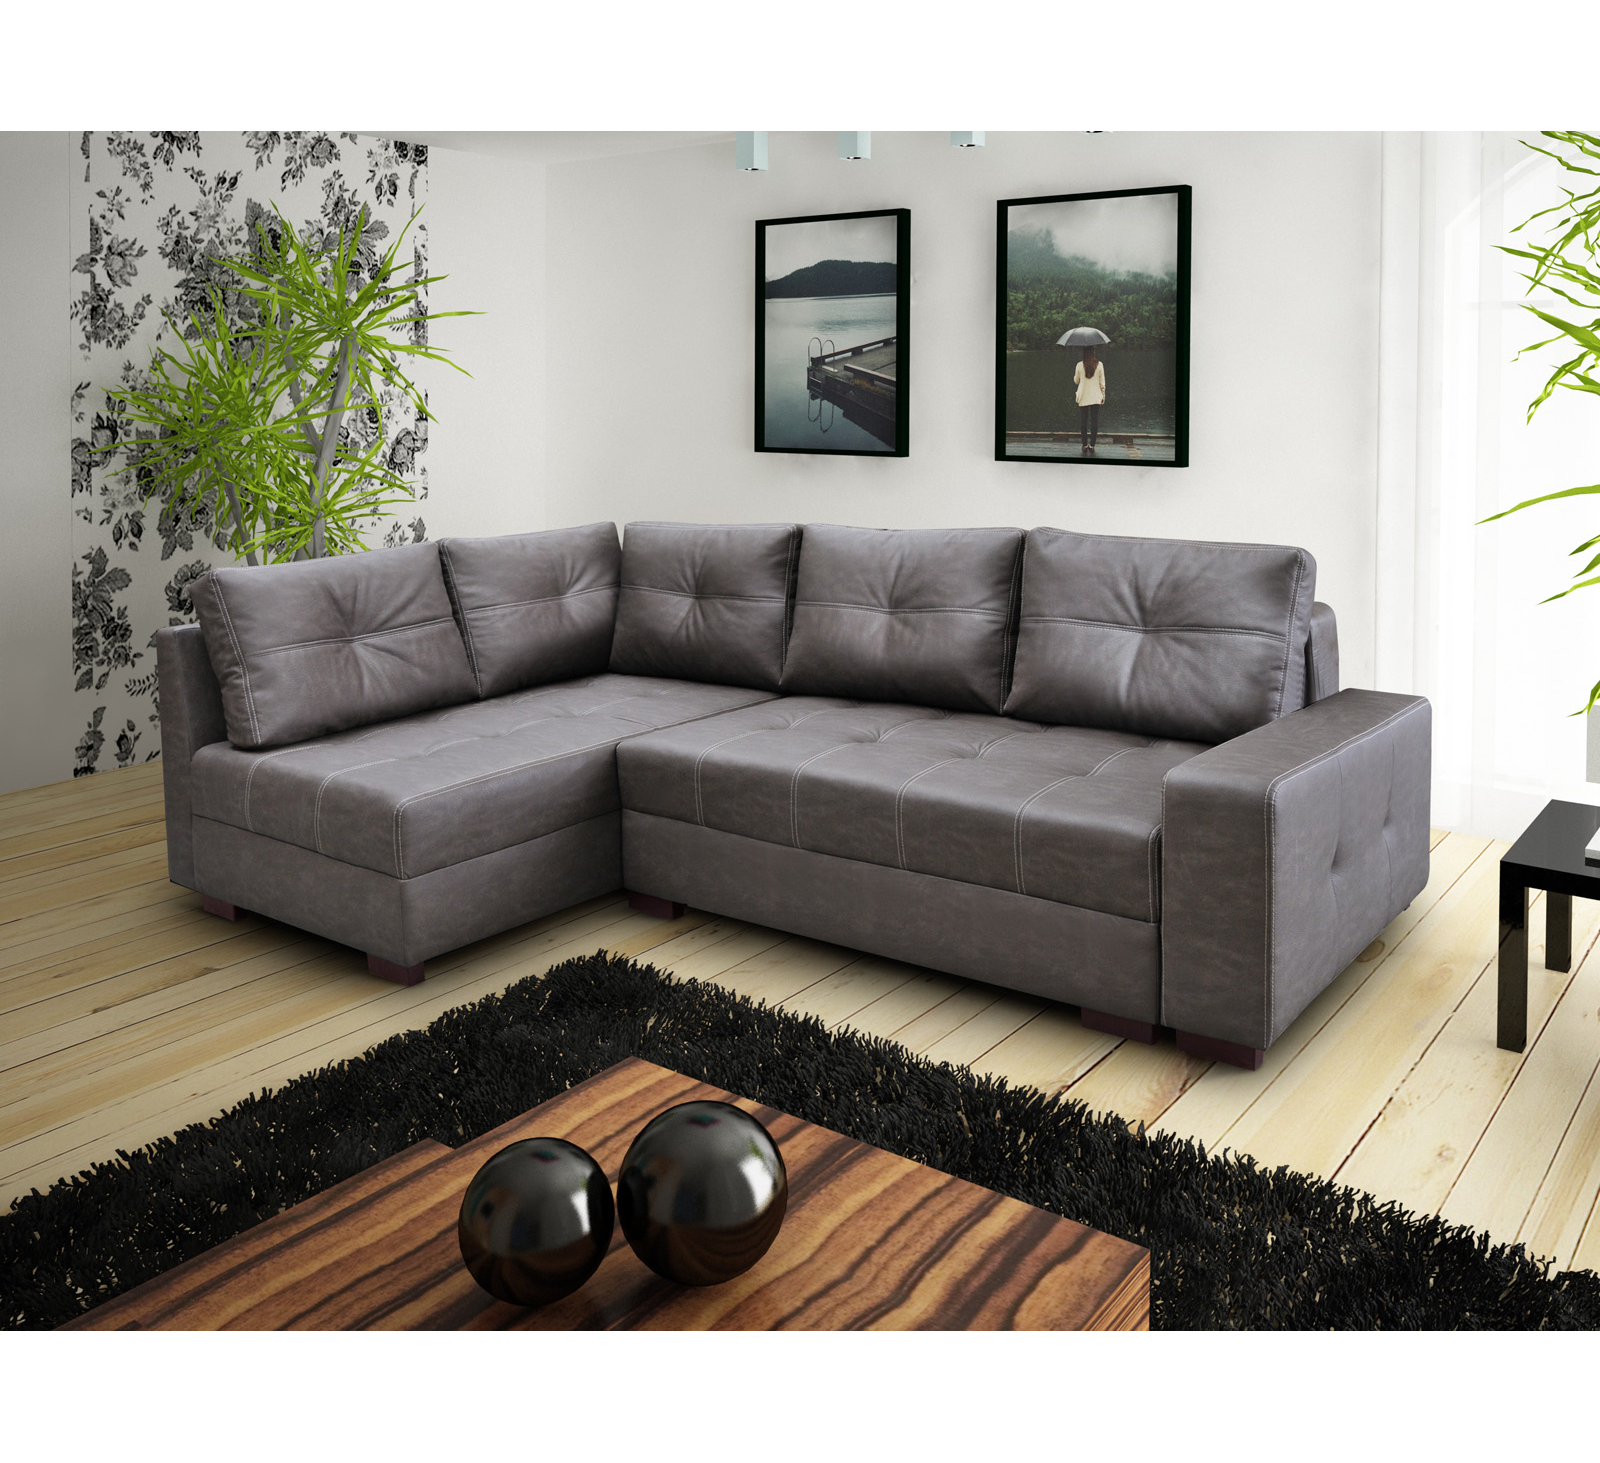 ecksofa bahama elefant m bel muller braun. Black Bedroom Furniture Sets. Home Design Ideas